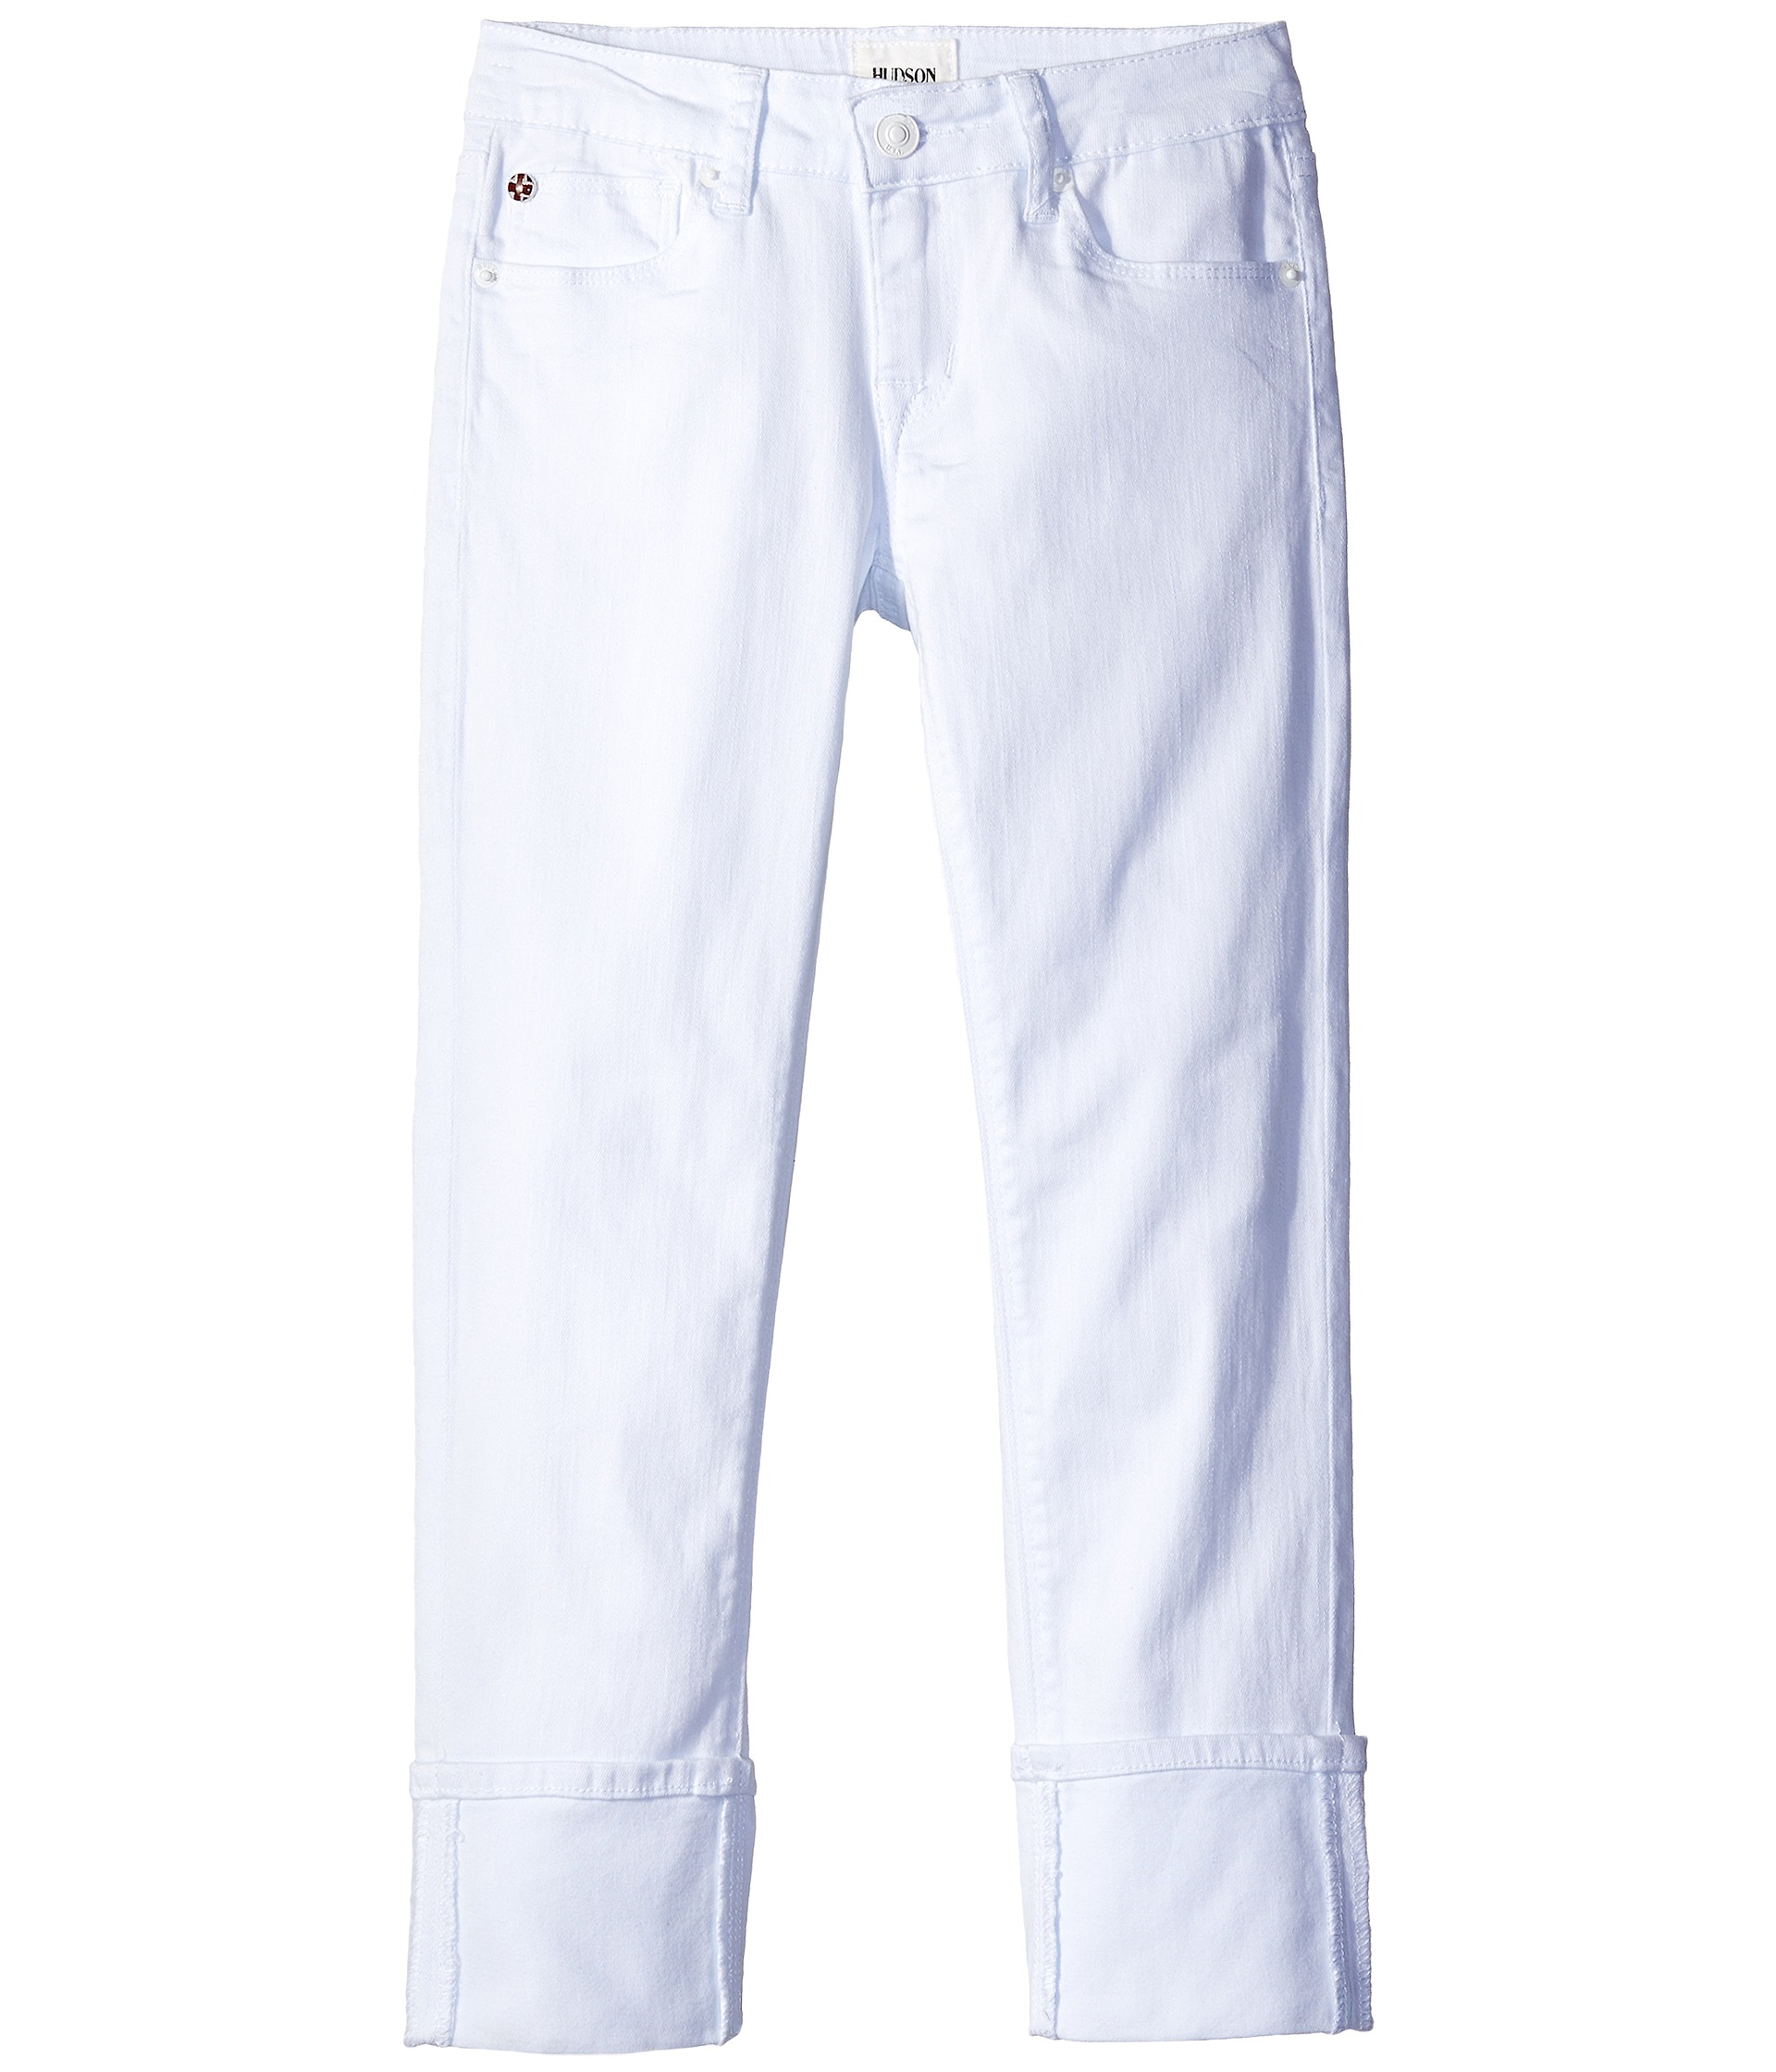 Hudson Kids Ginny Crop Jeans in White (Big Kids) - Zappos.com Free ...